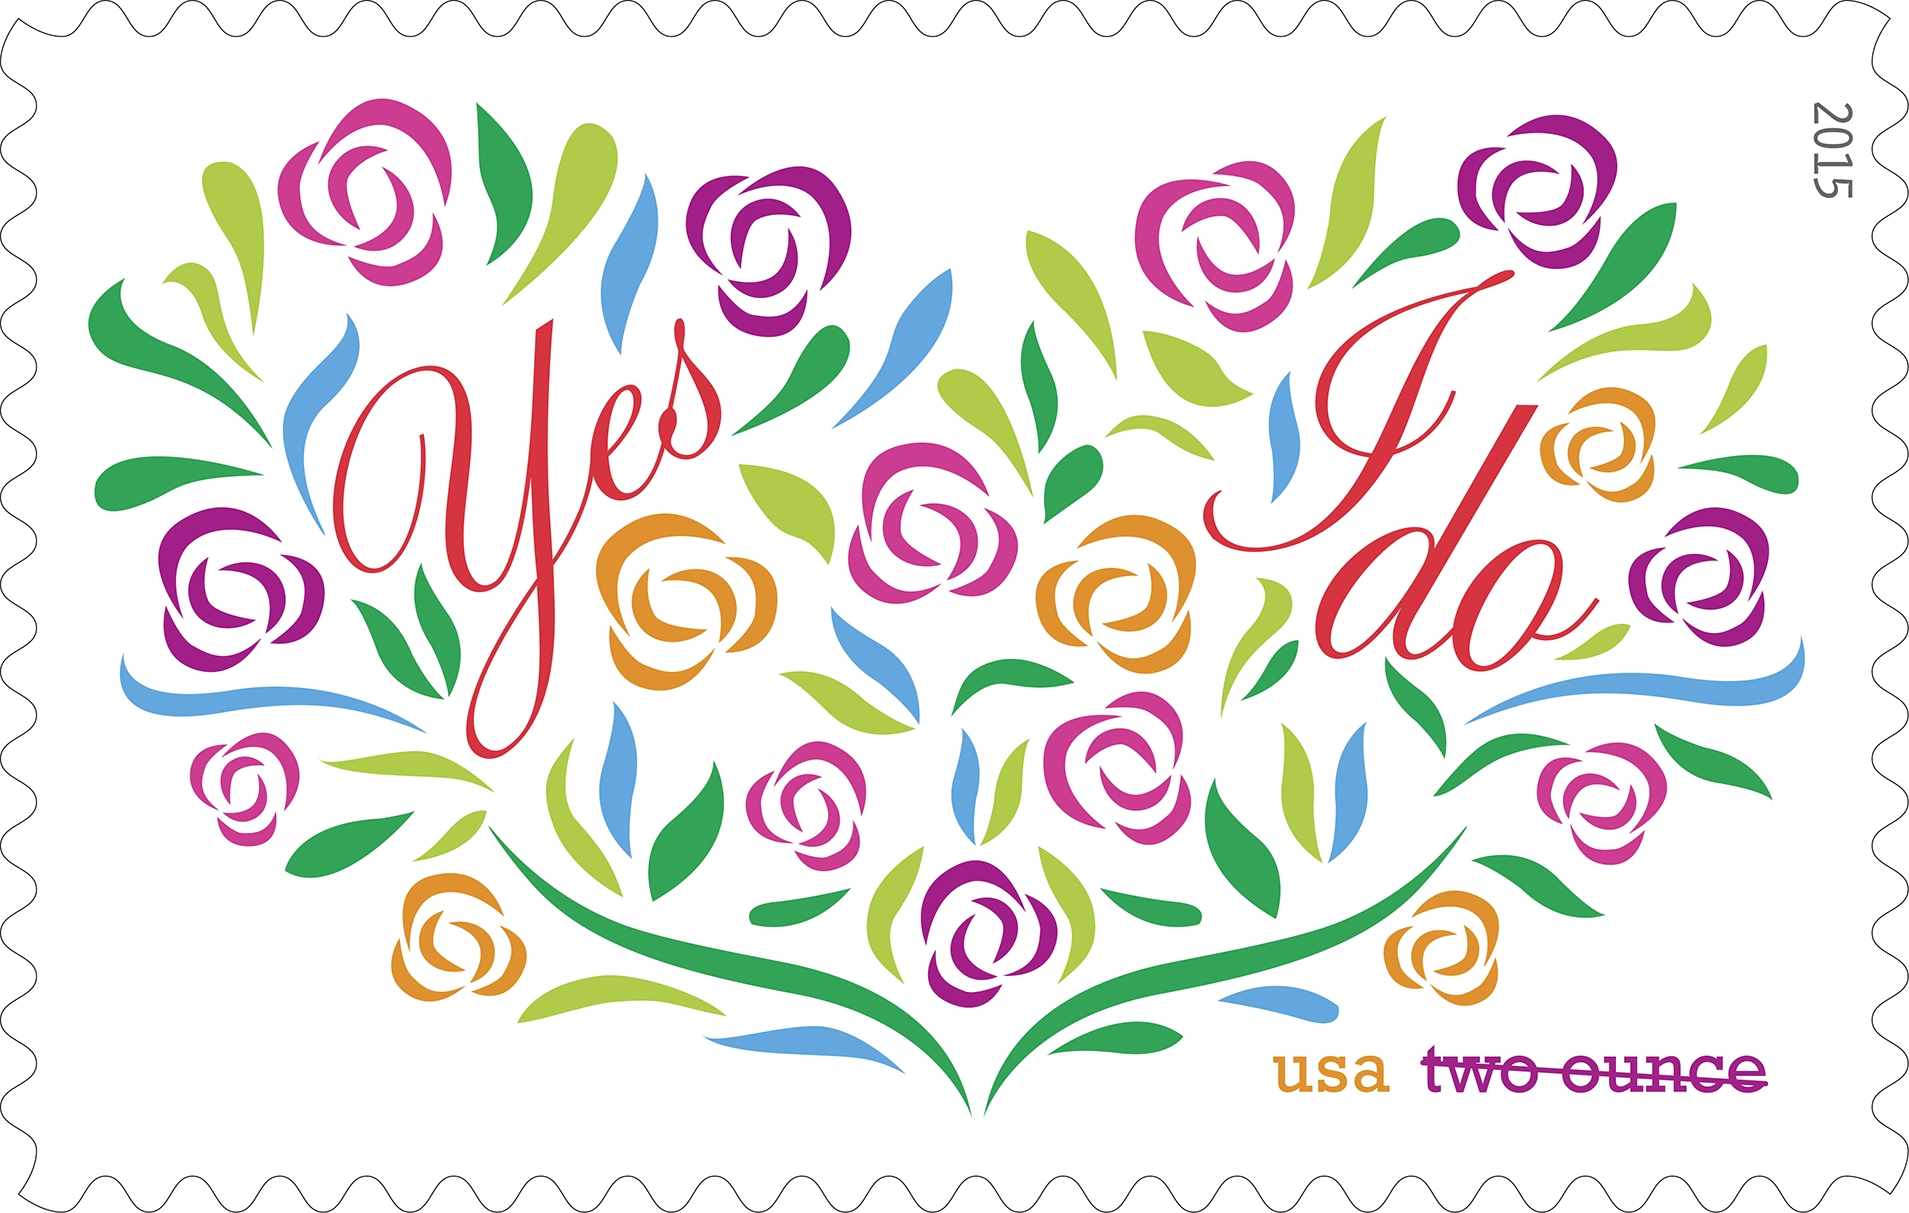 How much do postcard stamps cost 2015